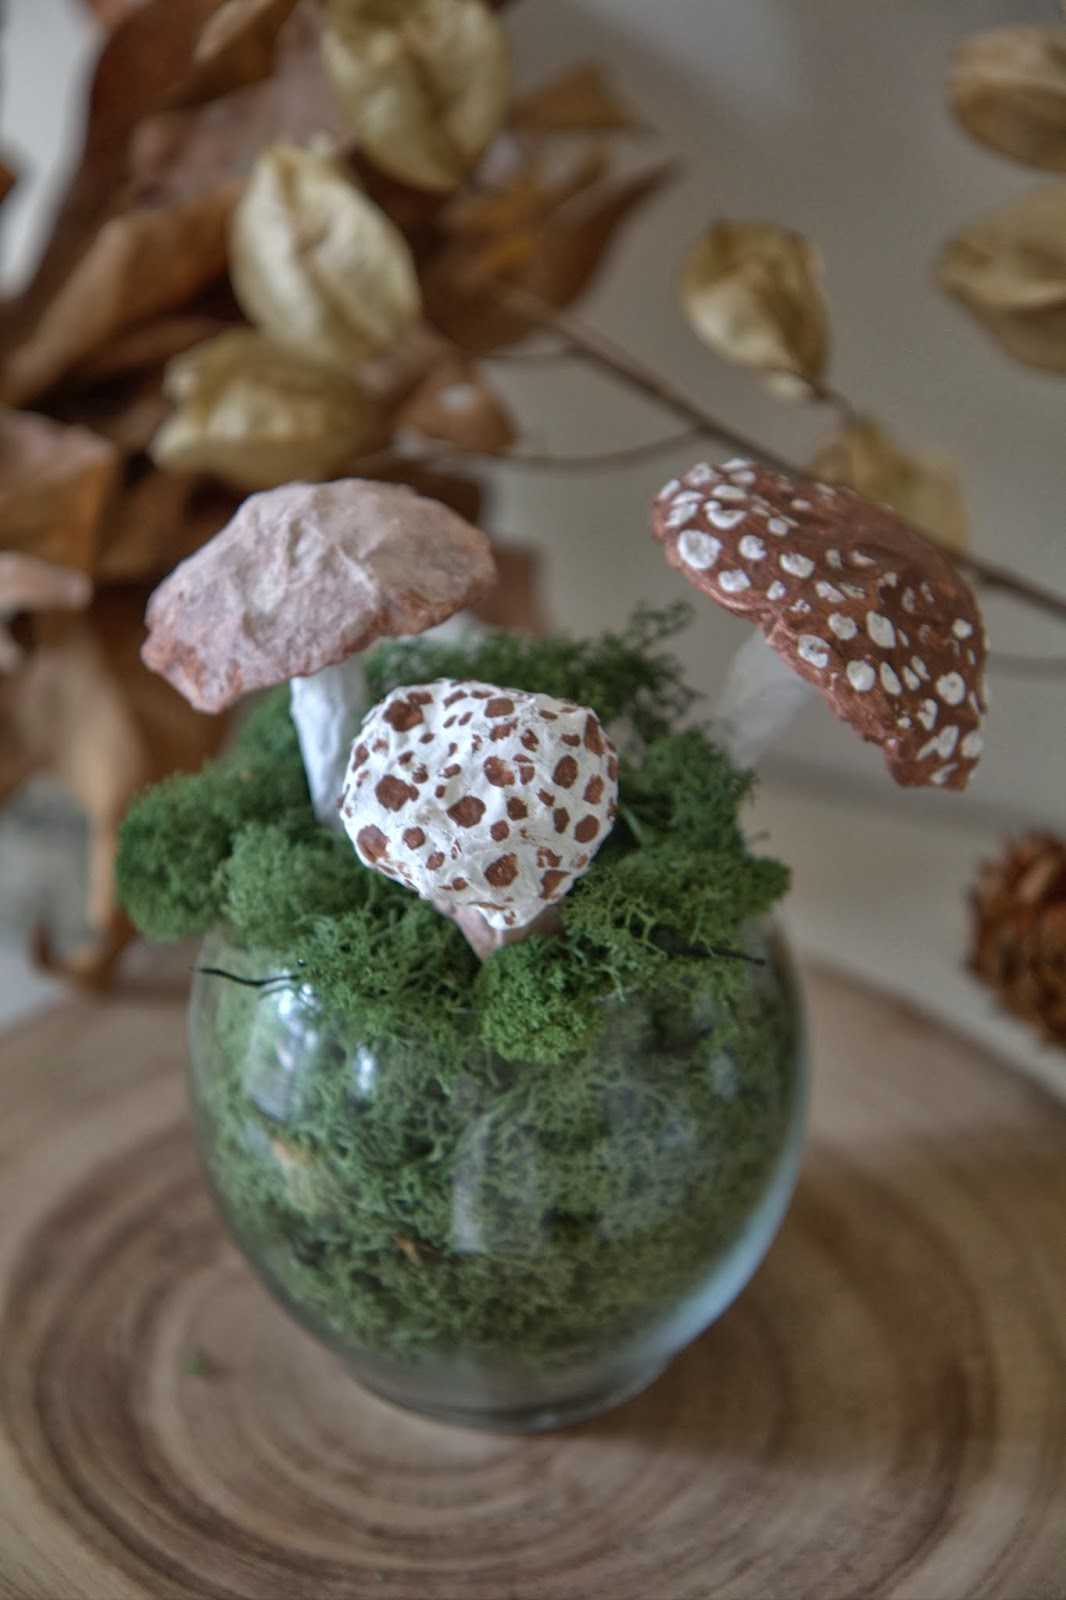 Paper Mache Mushrooms in Moss 10